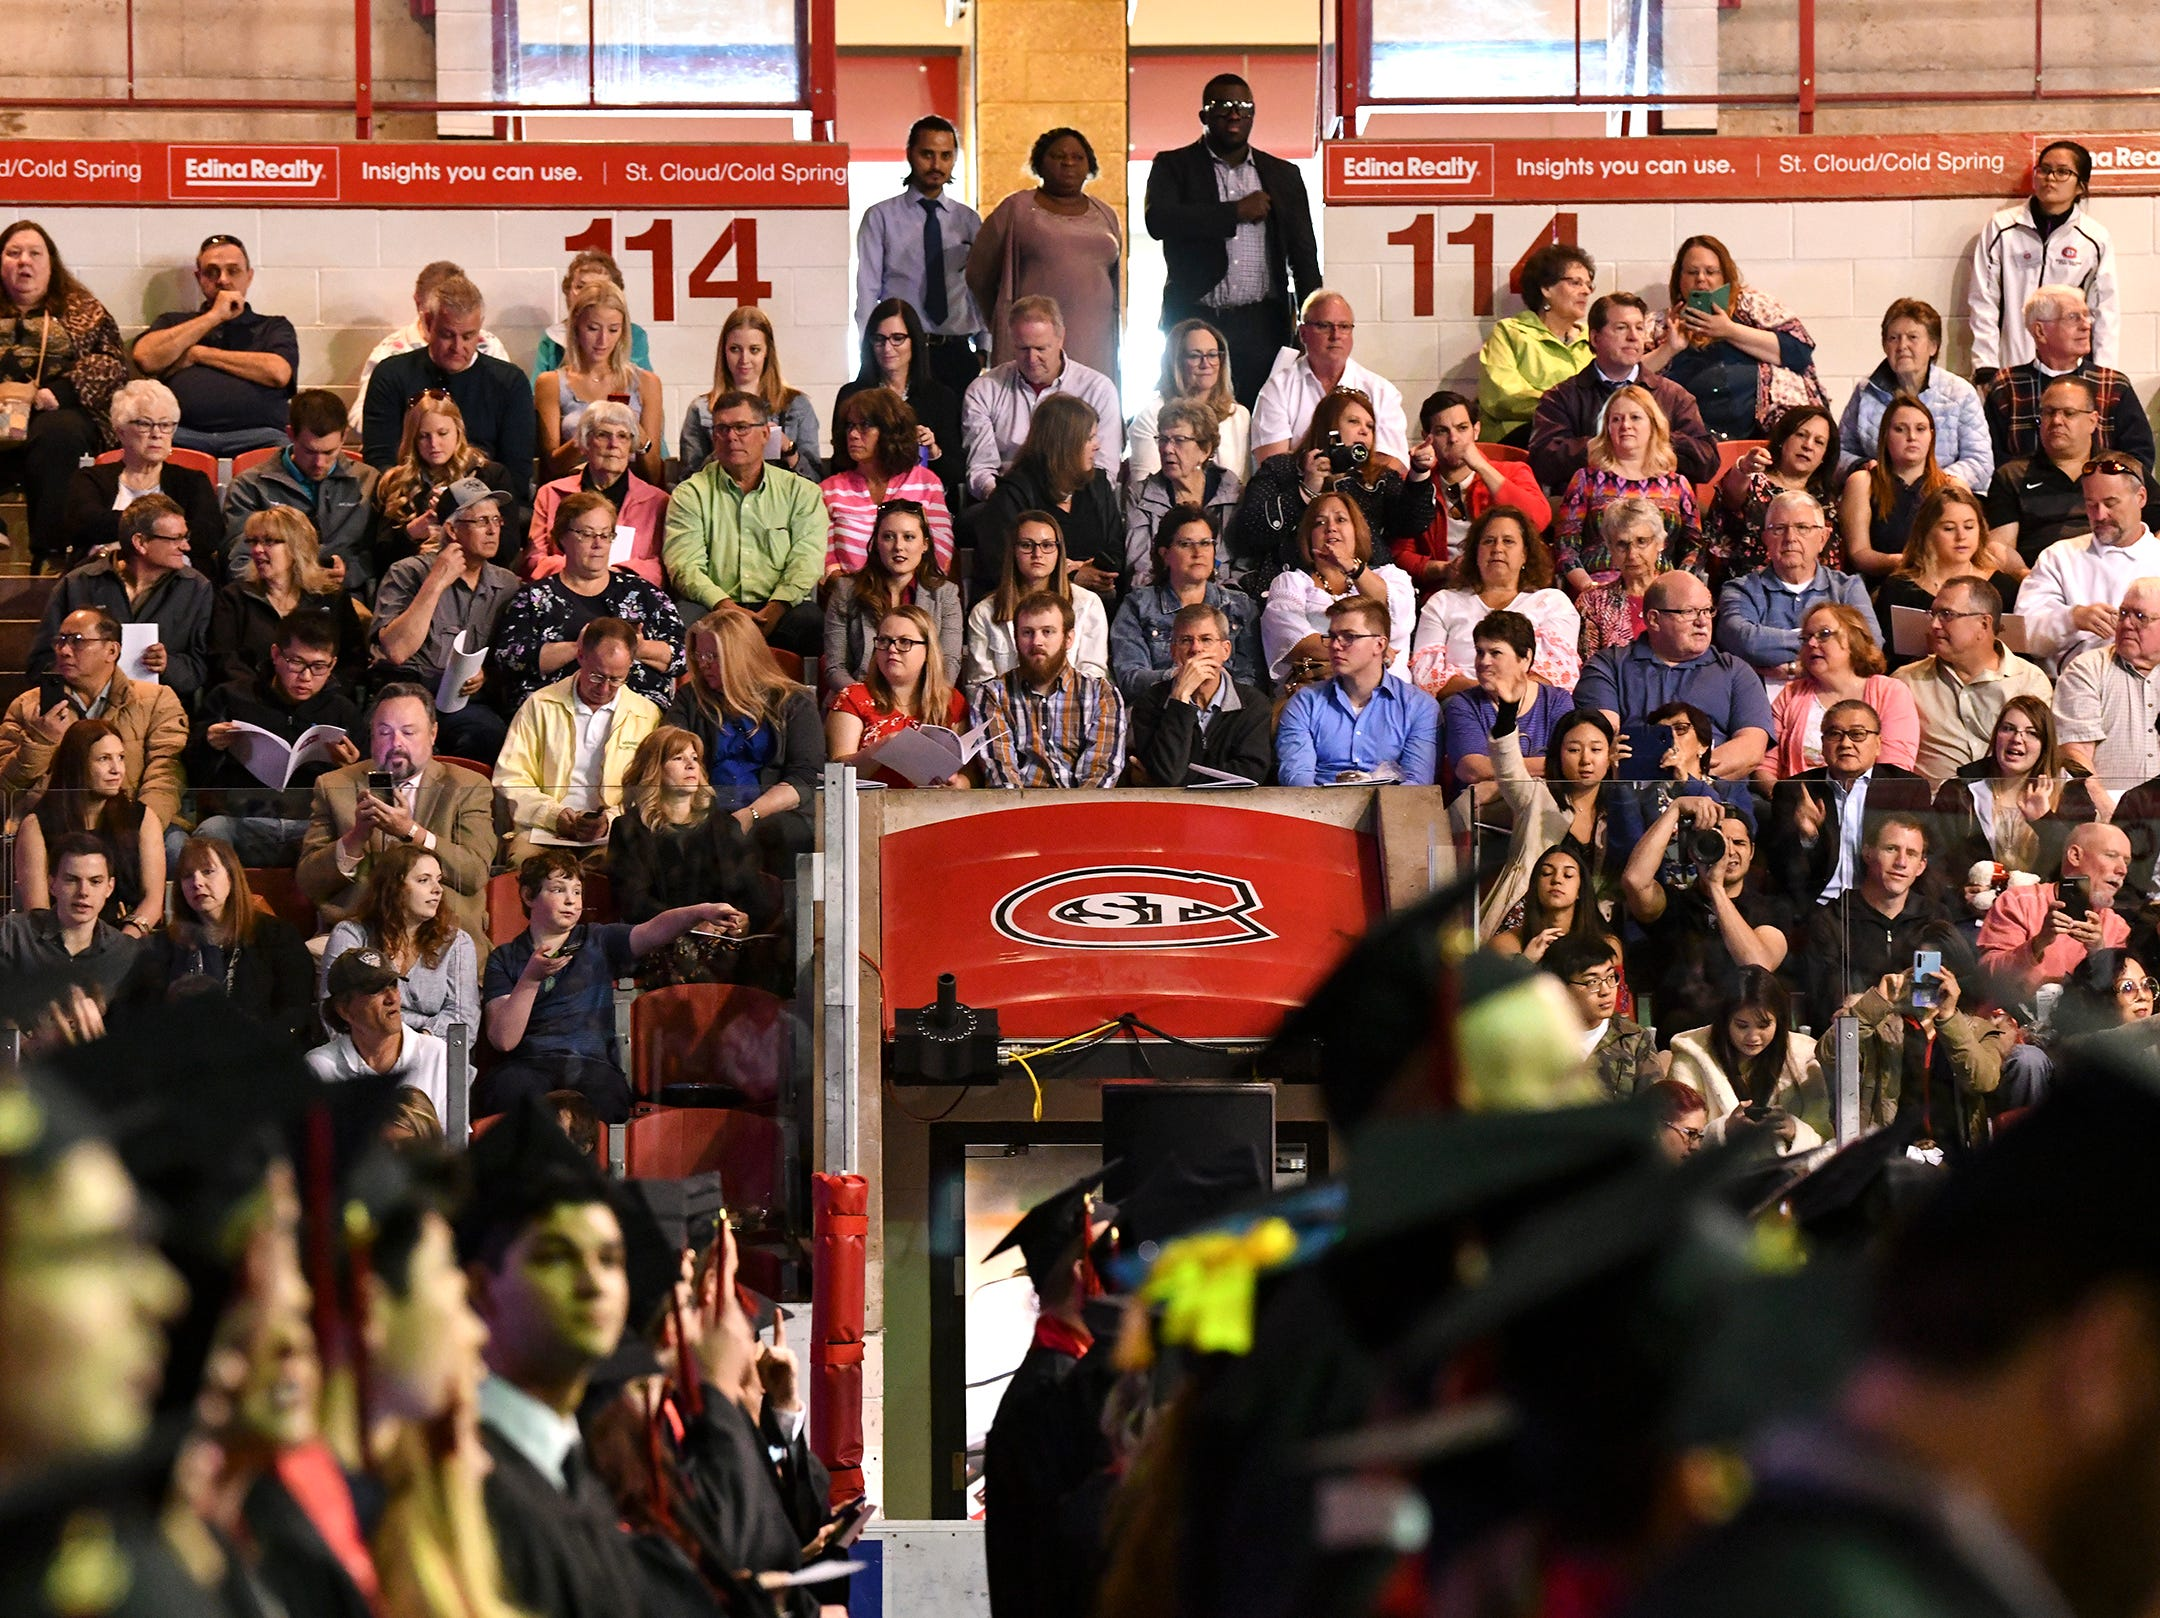 Friends and family watch as students enter for the morning commencement ceremony Friday, May 10, in the Herb Brooks National Hockey Center at St. Cloud State University in St. Cloud.